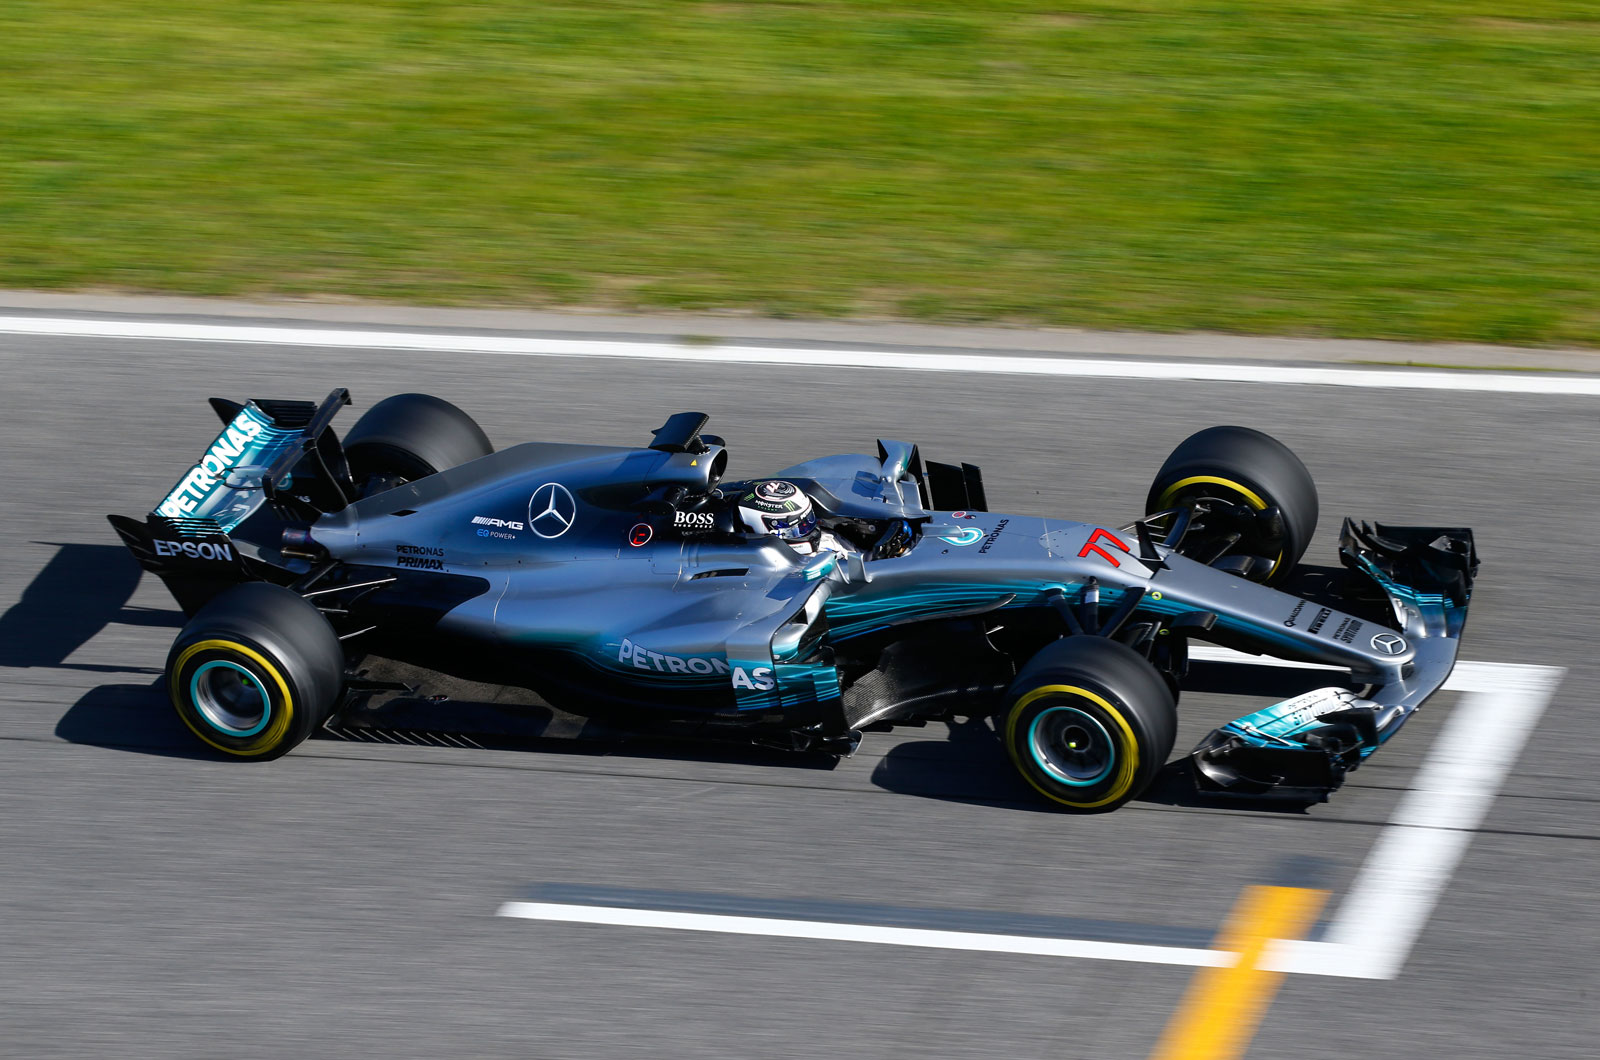 The Cars Of Formula 1 2017 Pre Season Testing Update Autocar Vettel Expects Indian Circuit To Be Secondfastest F1 Track